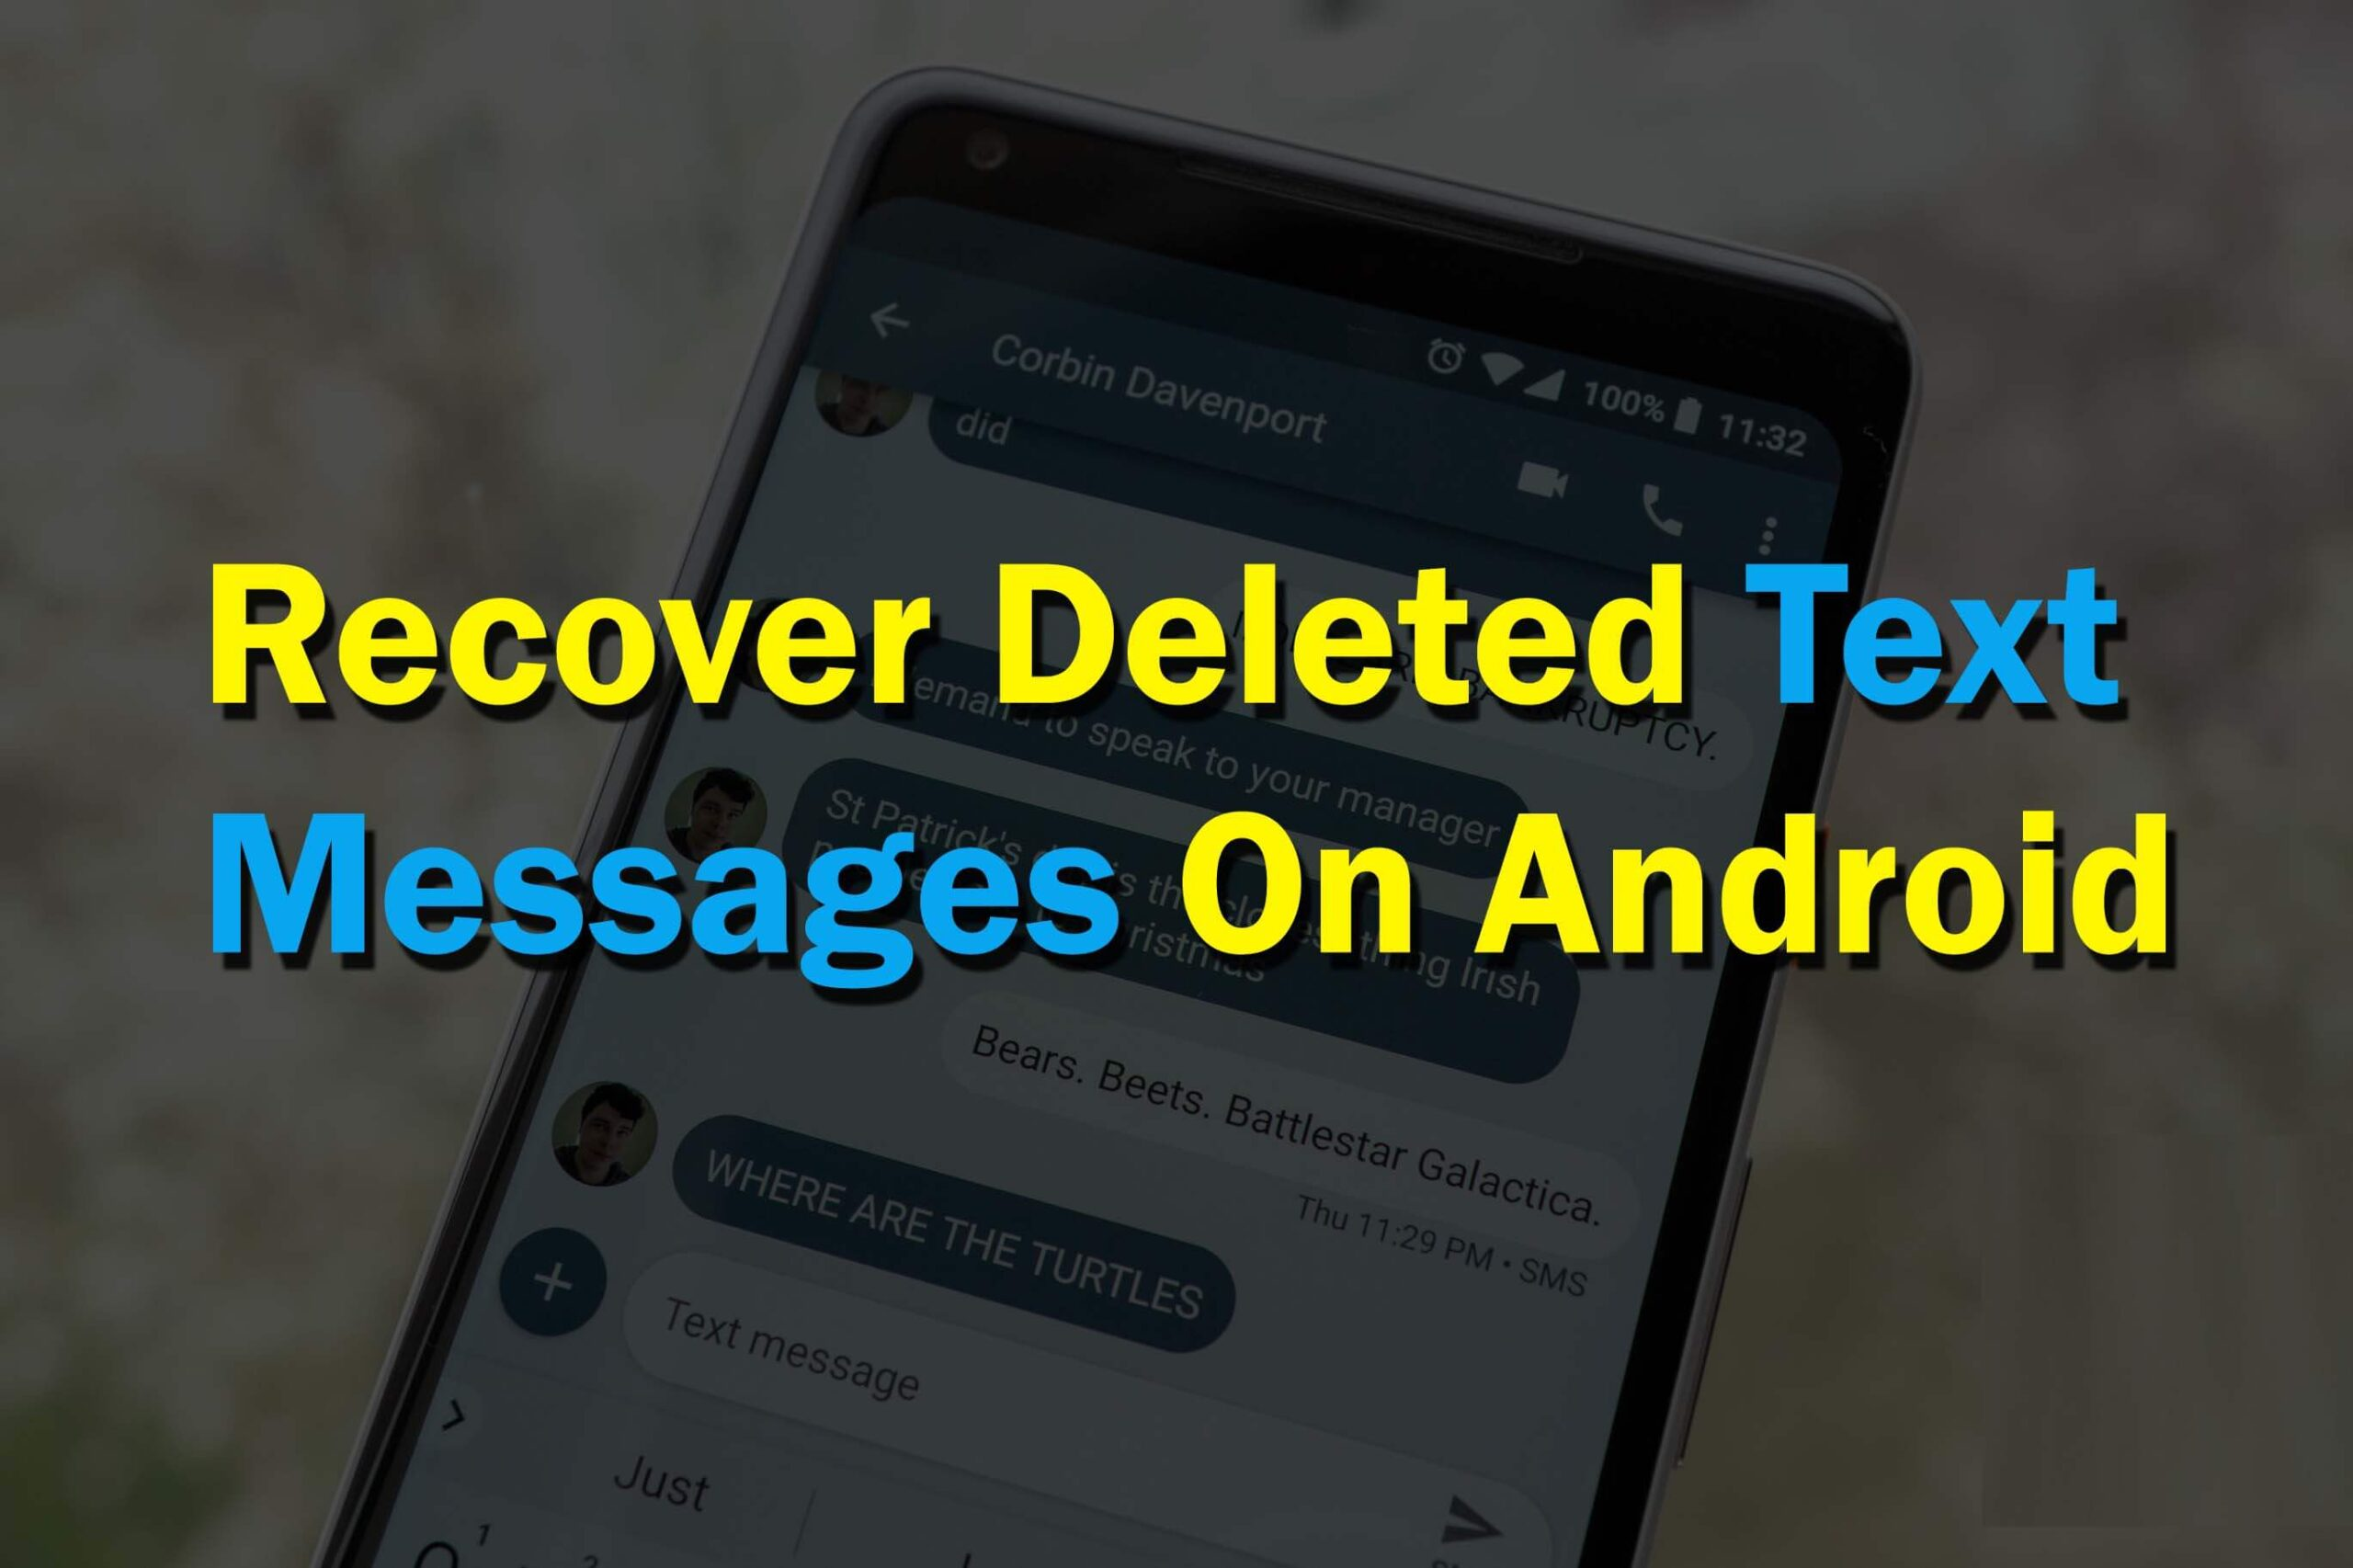 Android SMS Recovery- Recover Deleted Text Messages On Android